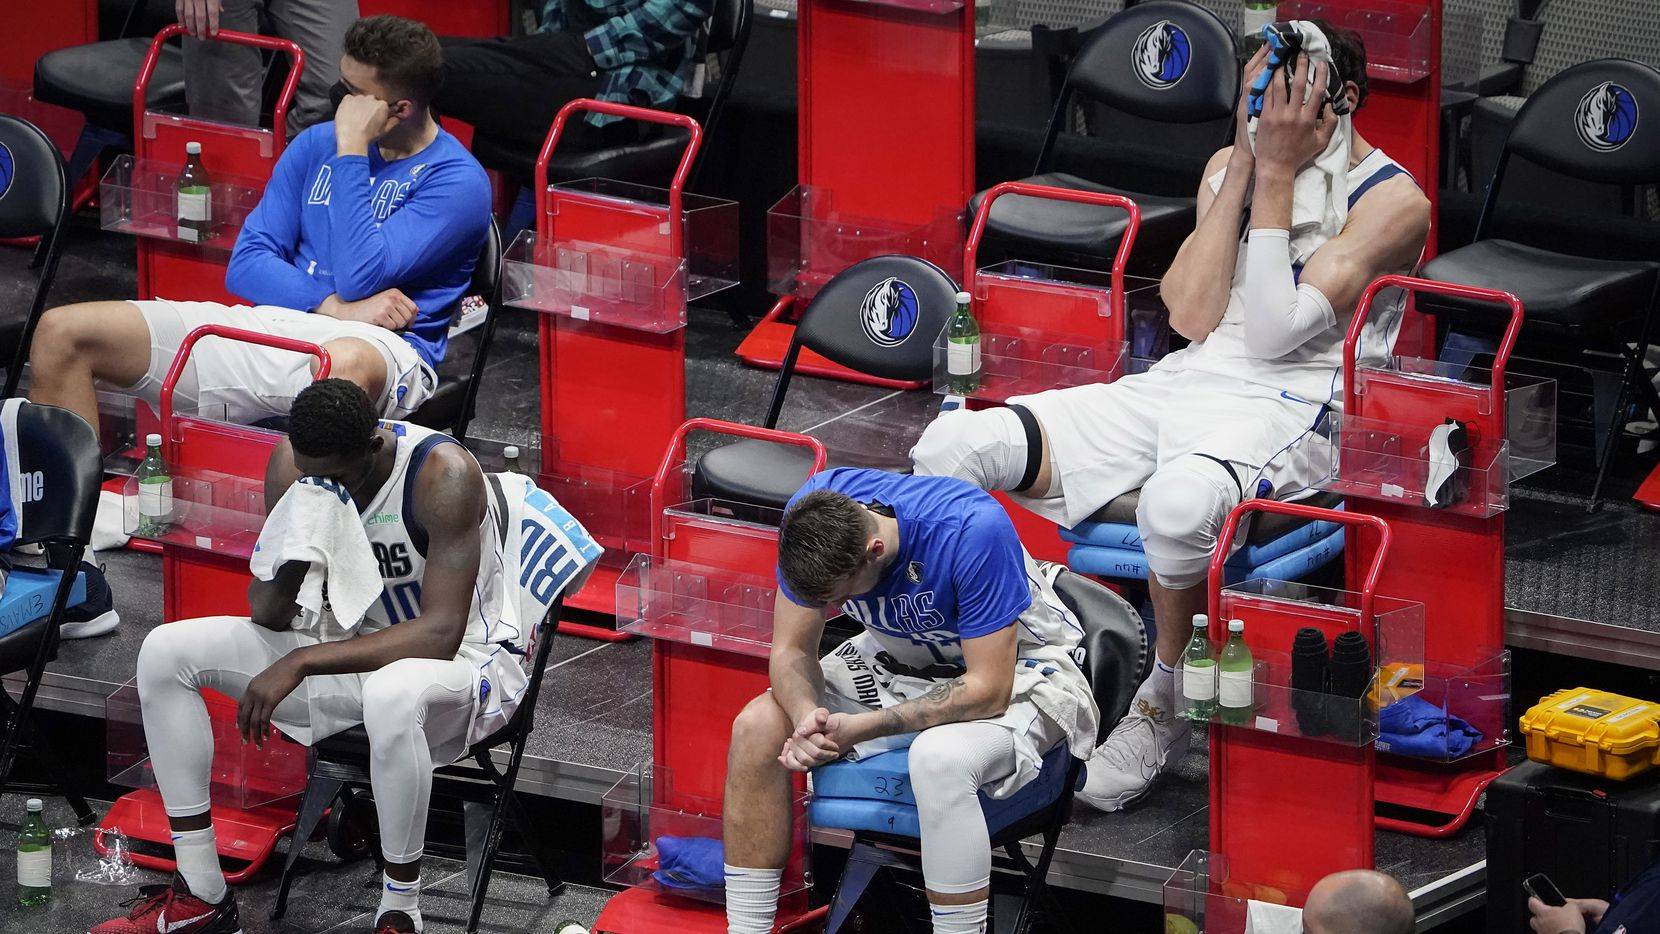 Dallas Mavericks guard Luka Doncic sits (bottom right) on the bench with forward Dorian Finney-Smith (bottom left), forward Maxi Kleber (top left) and center Boban Marjanovic (top right) during the fourth quarter of a loss to the LA Clippers in an NBA playoff basketball game  at American Airlines Center on Sunday, May 30, 2021, in Dallas.  The Clippers won the game 106-81.